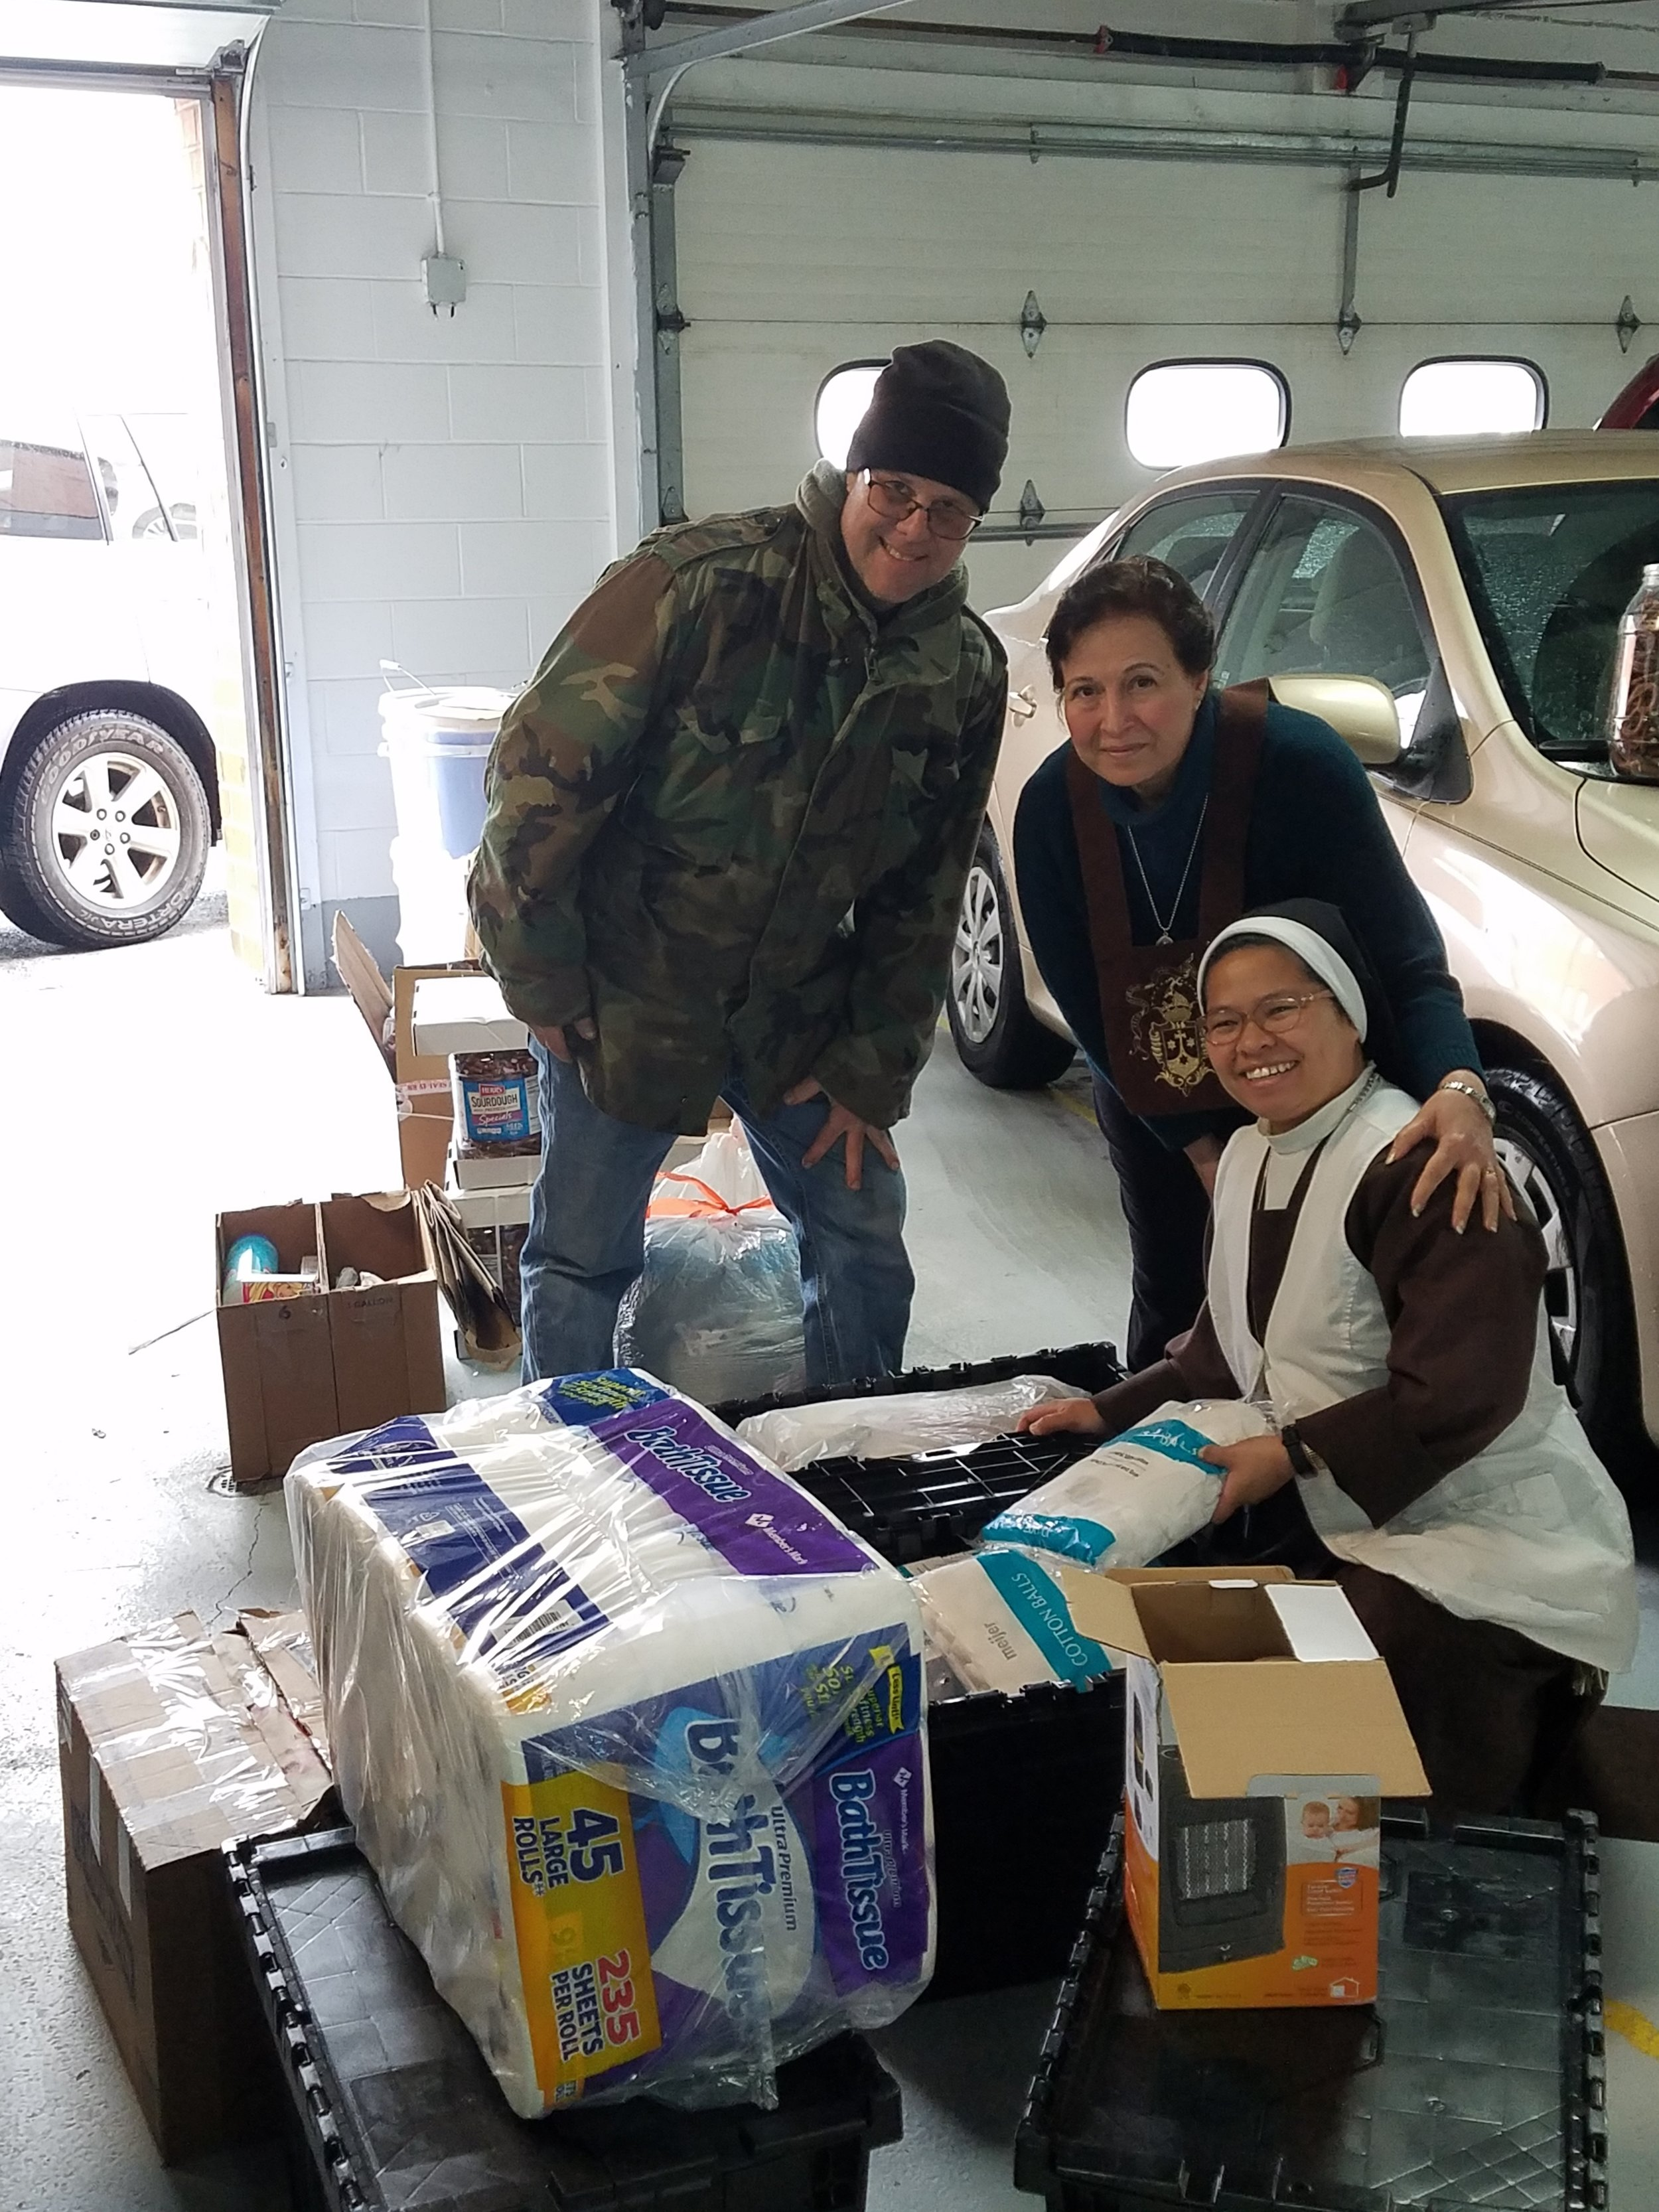 Taking hygiene items to the Carmelite Home - Monthly collections for the St. Joseph Carmelite Home by Ghanem and Mary